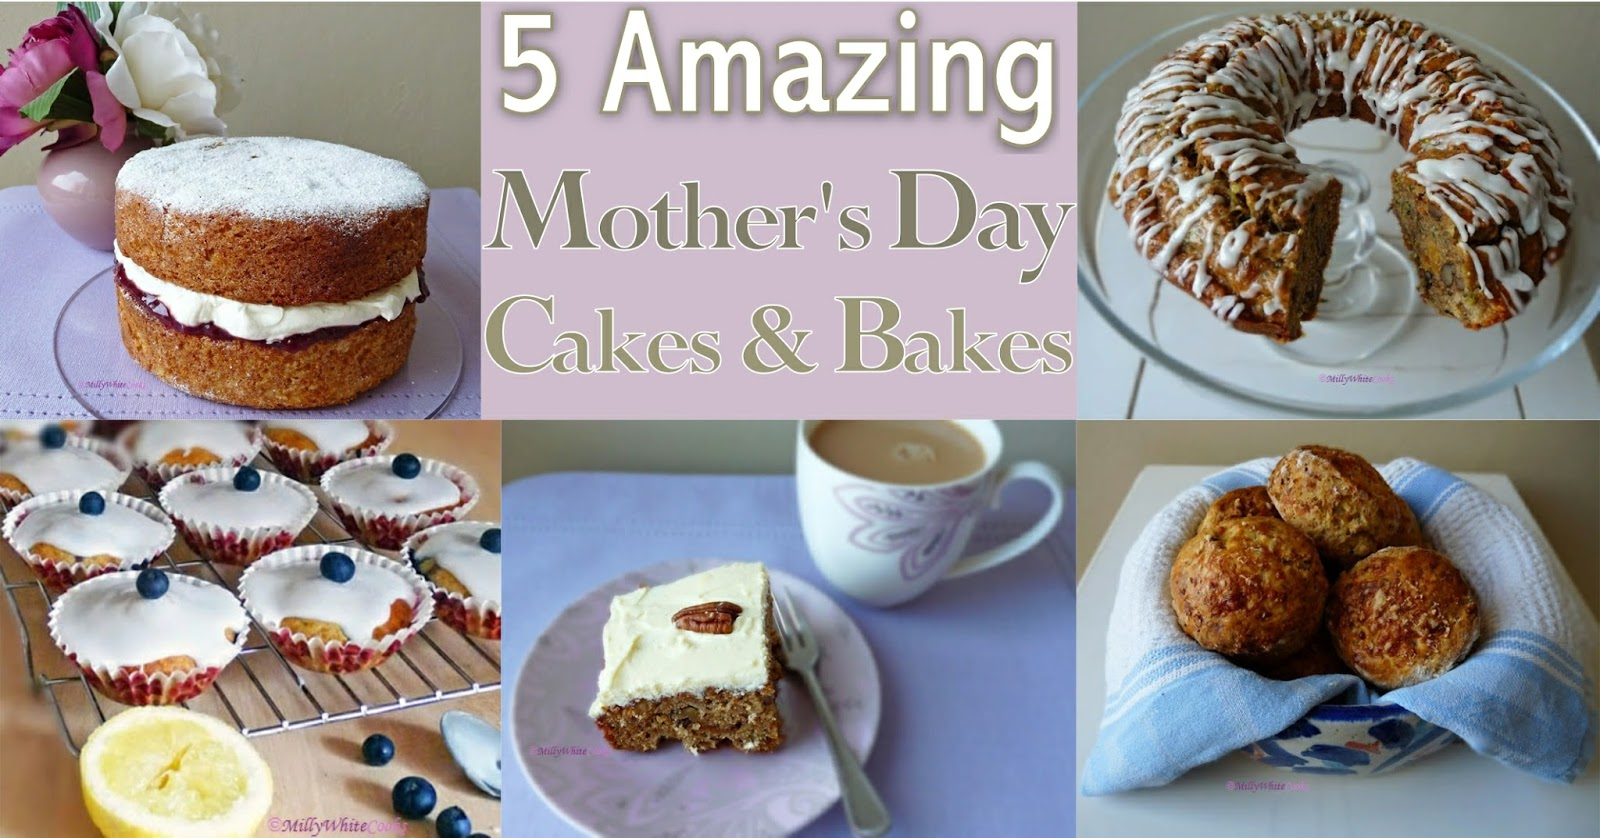 5 Amazing Mother's Day Cakes & Bakes for Afternoon Tea